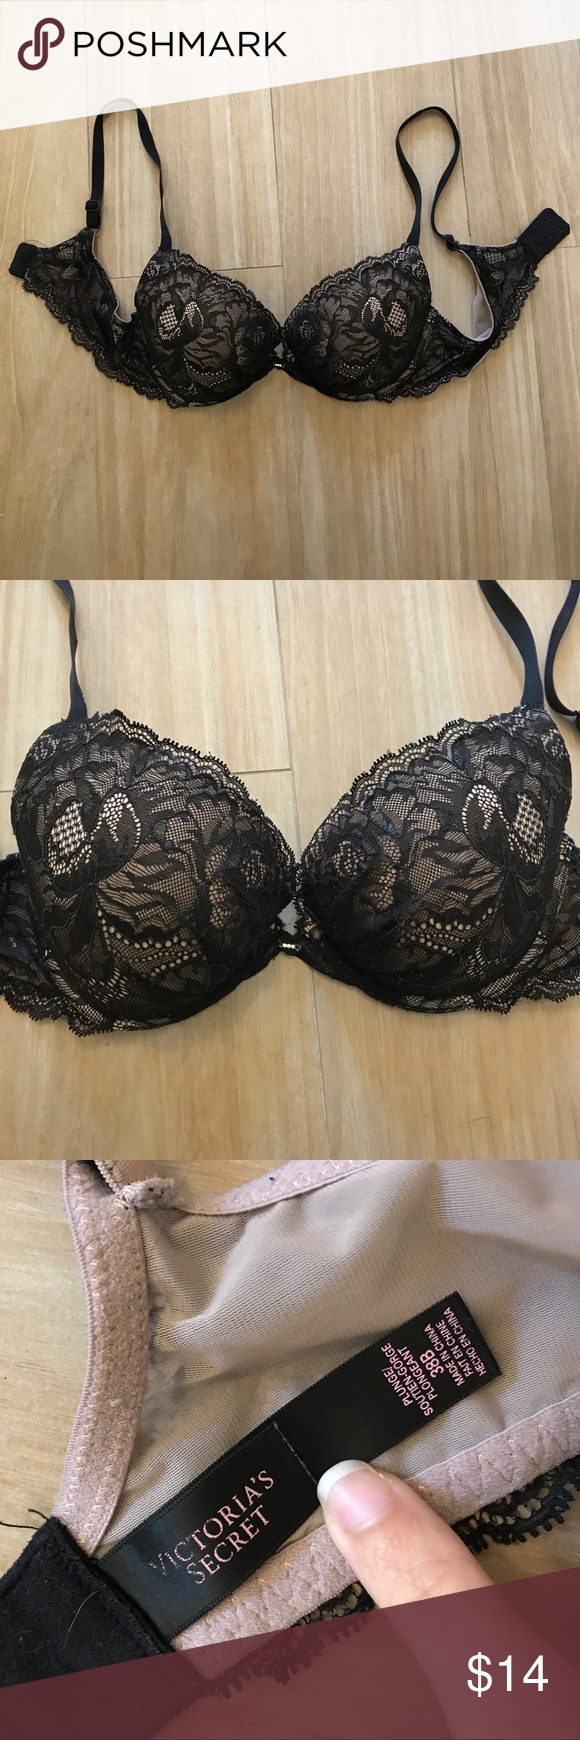 Victoria's Secret Lace Bra Victoria's Secret Very Sexy Black Lace Bra. Size  38 B. Worn around 12-15 times. In great condition with little visible signs  of ...